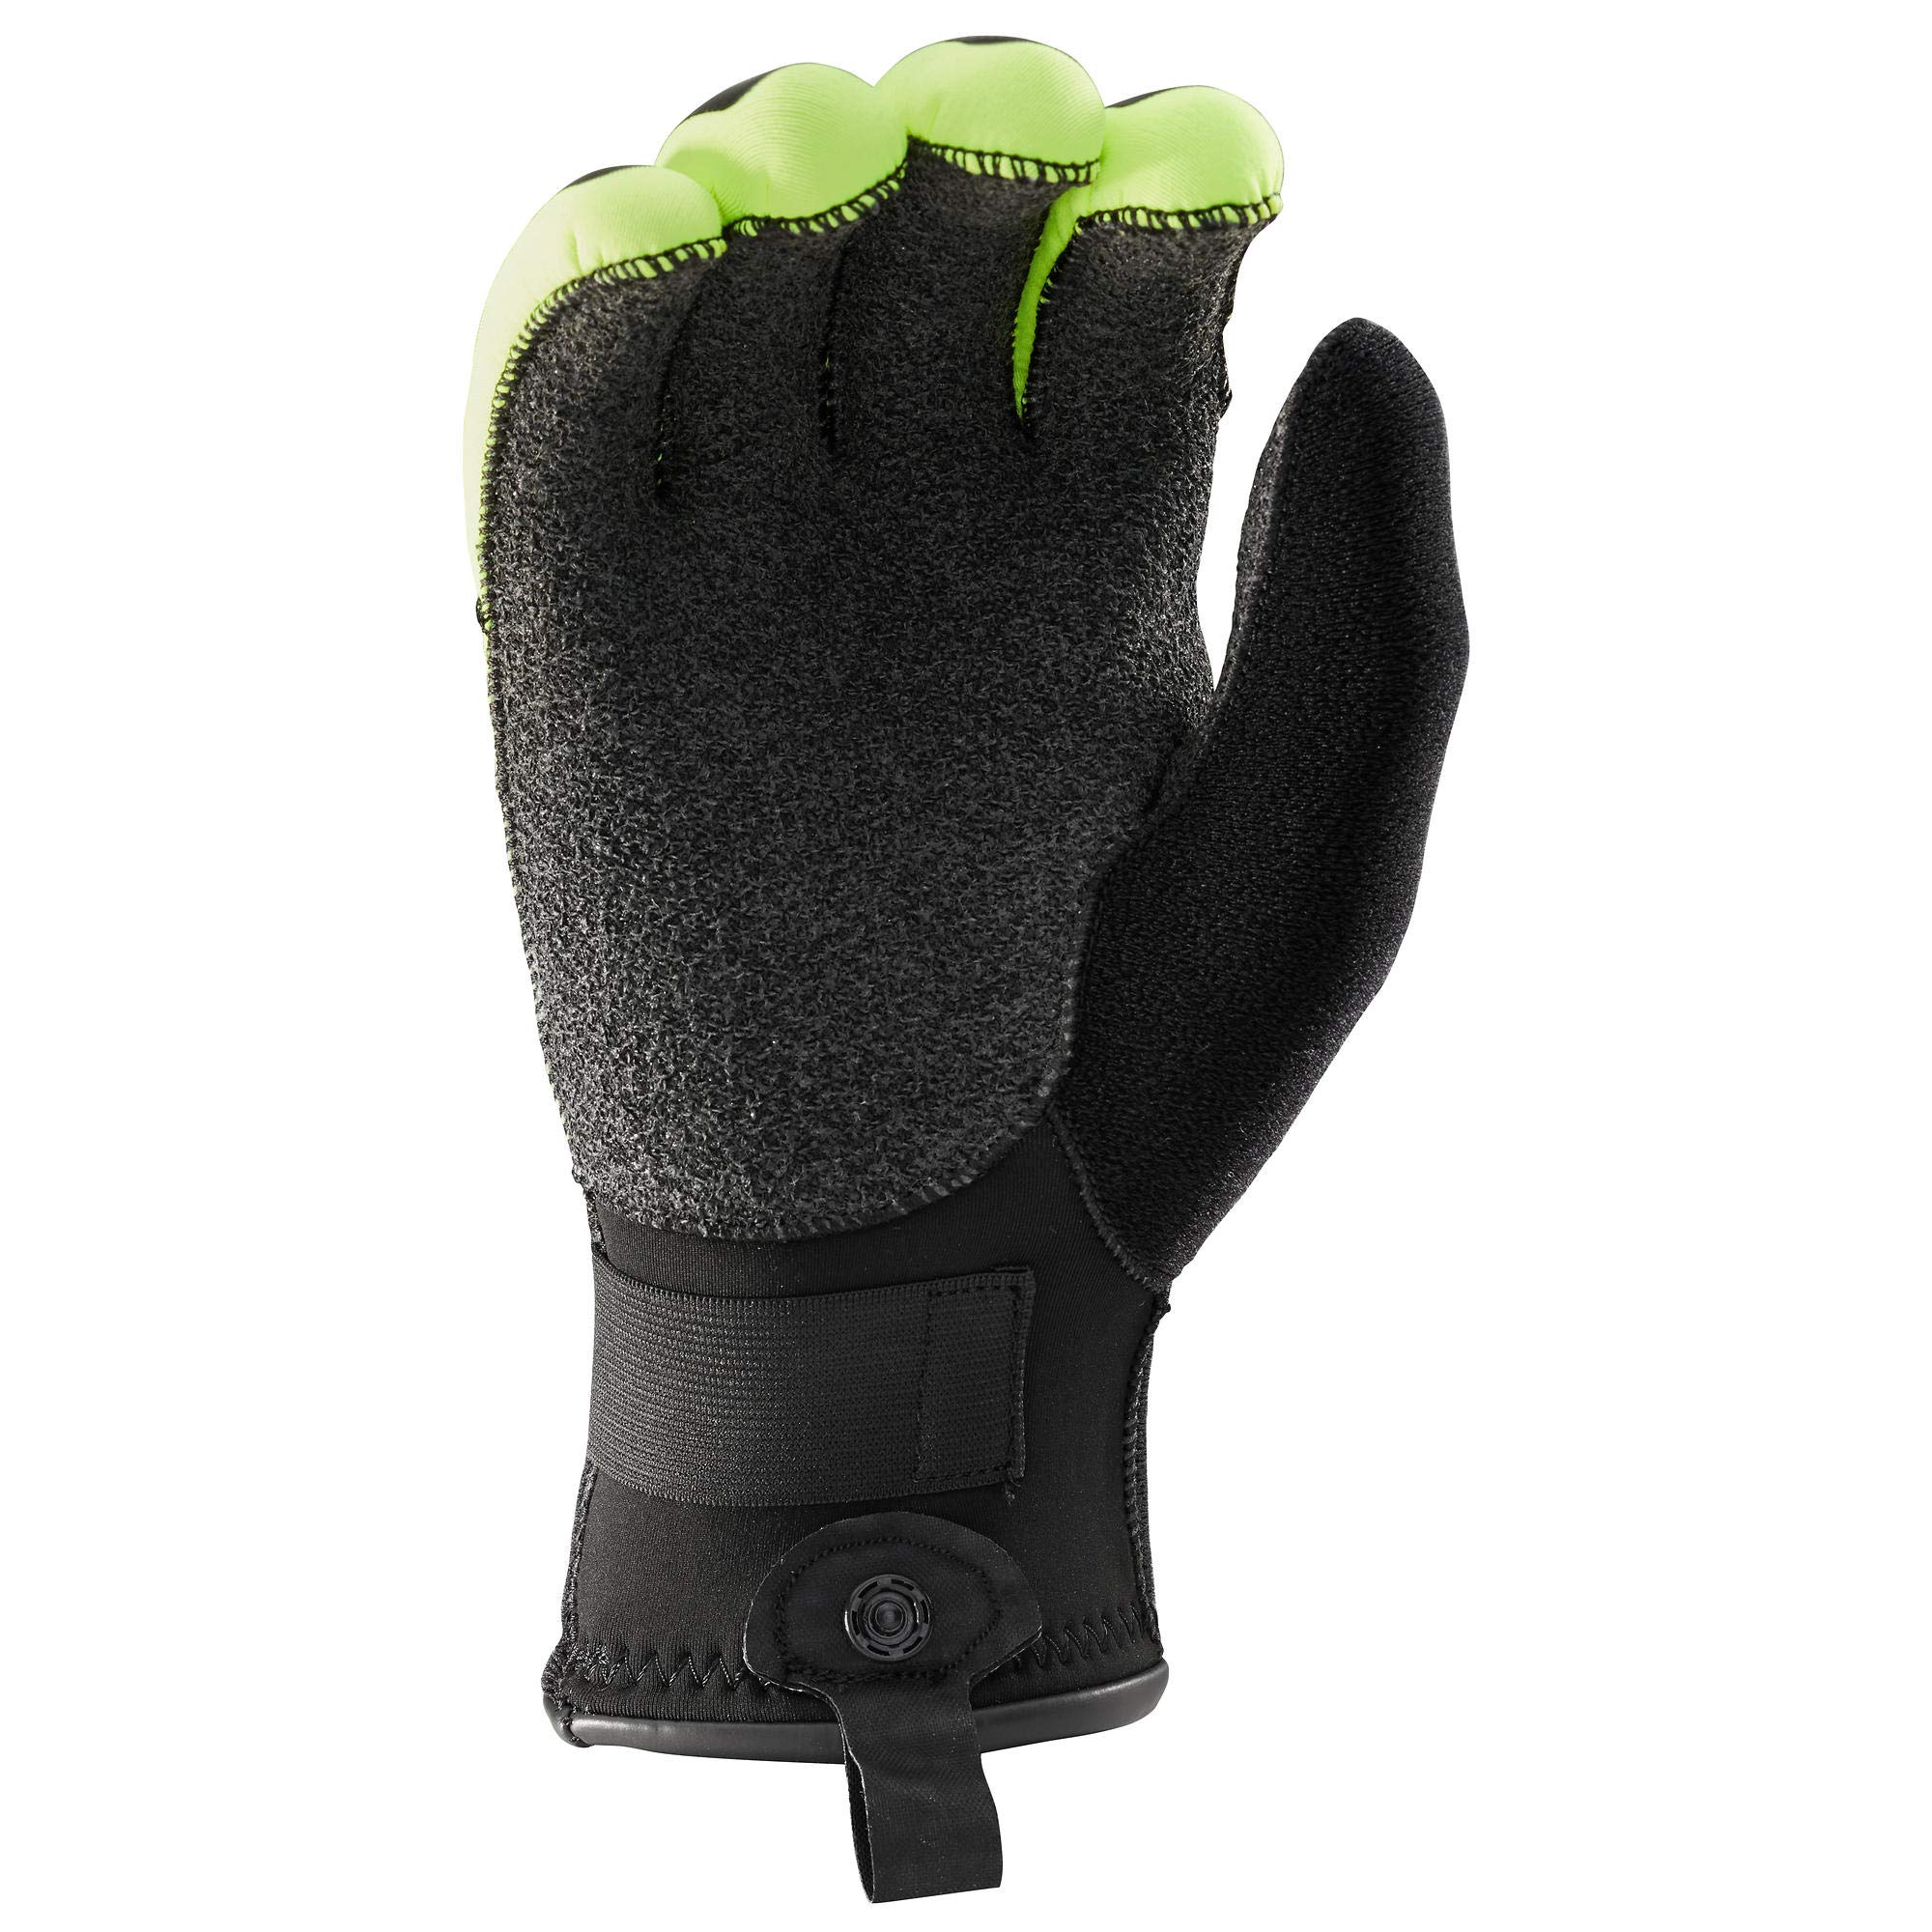 NRS Reactor Rescue Glove High Vis Green Large by NRS (Image #2)